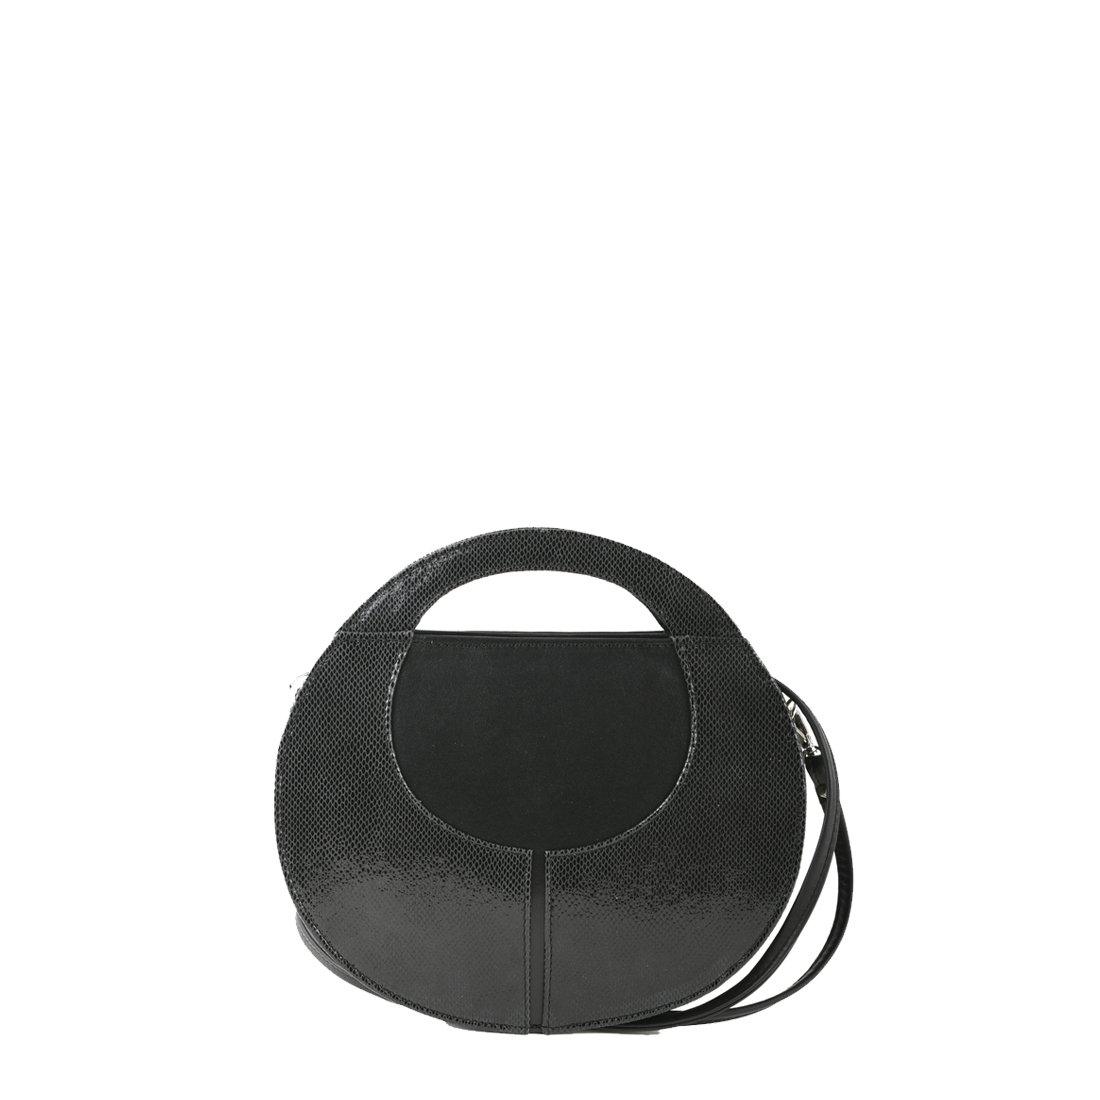 Olivia Black Print  Leather Shoulder Bag